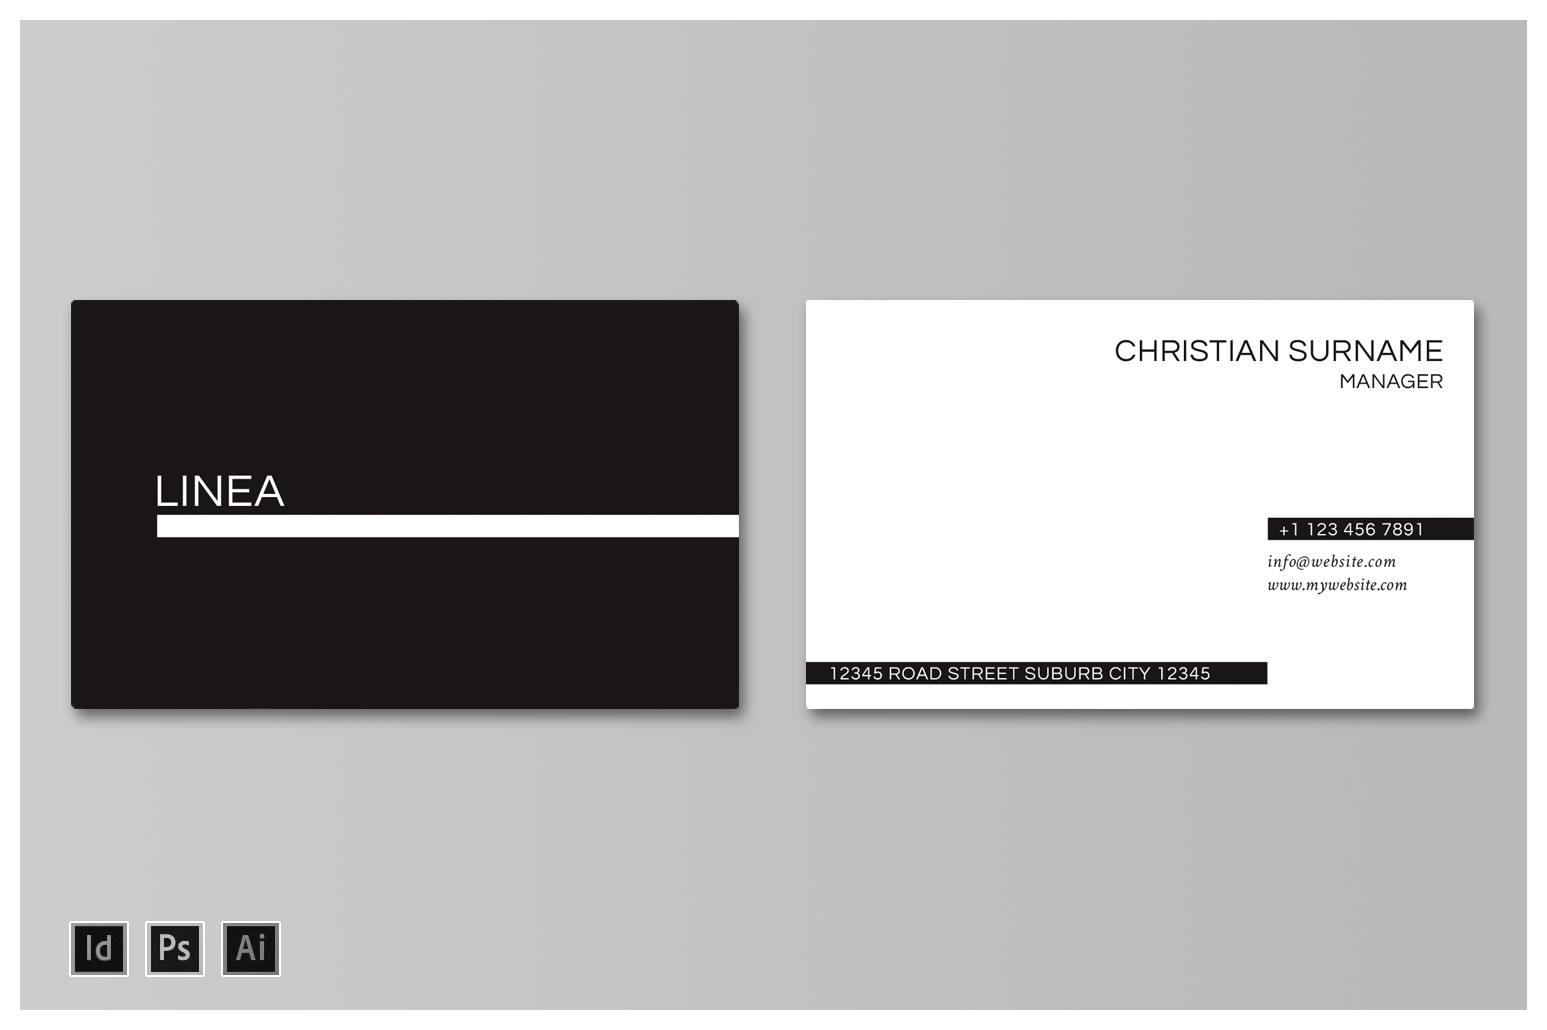 Linea Business Card Mockup Landscape